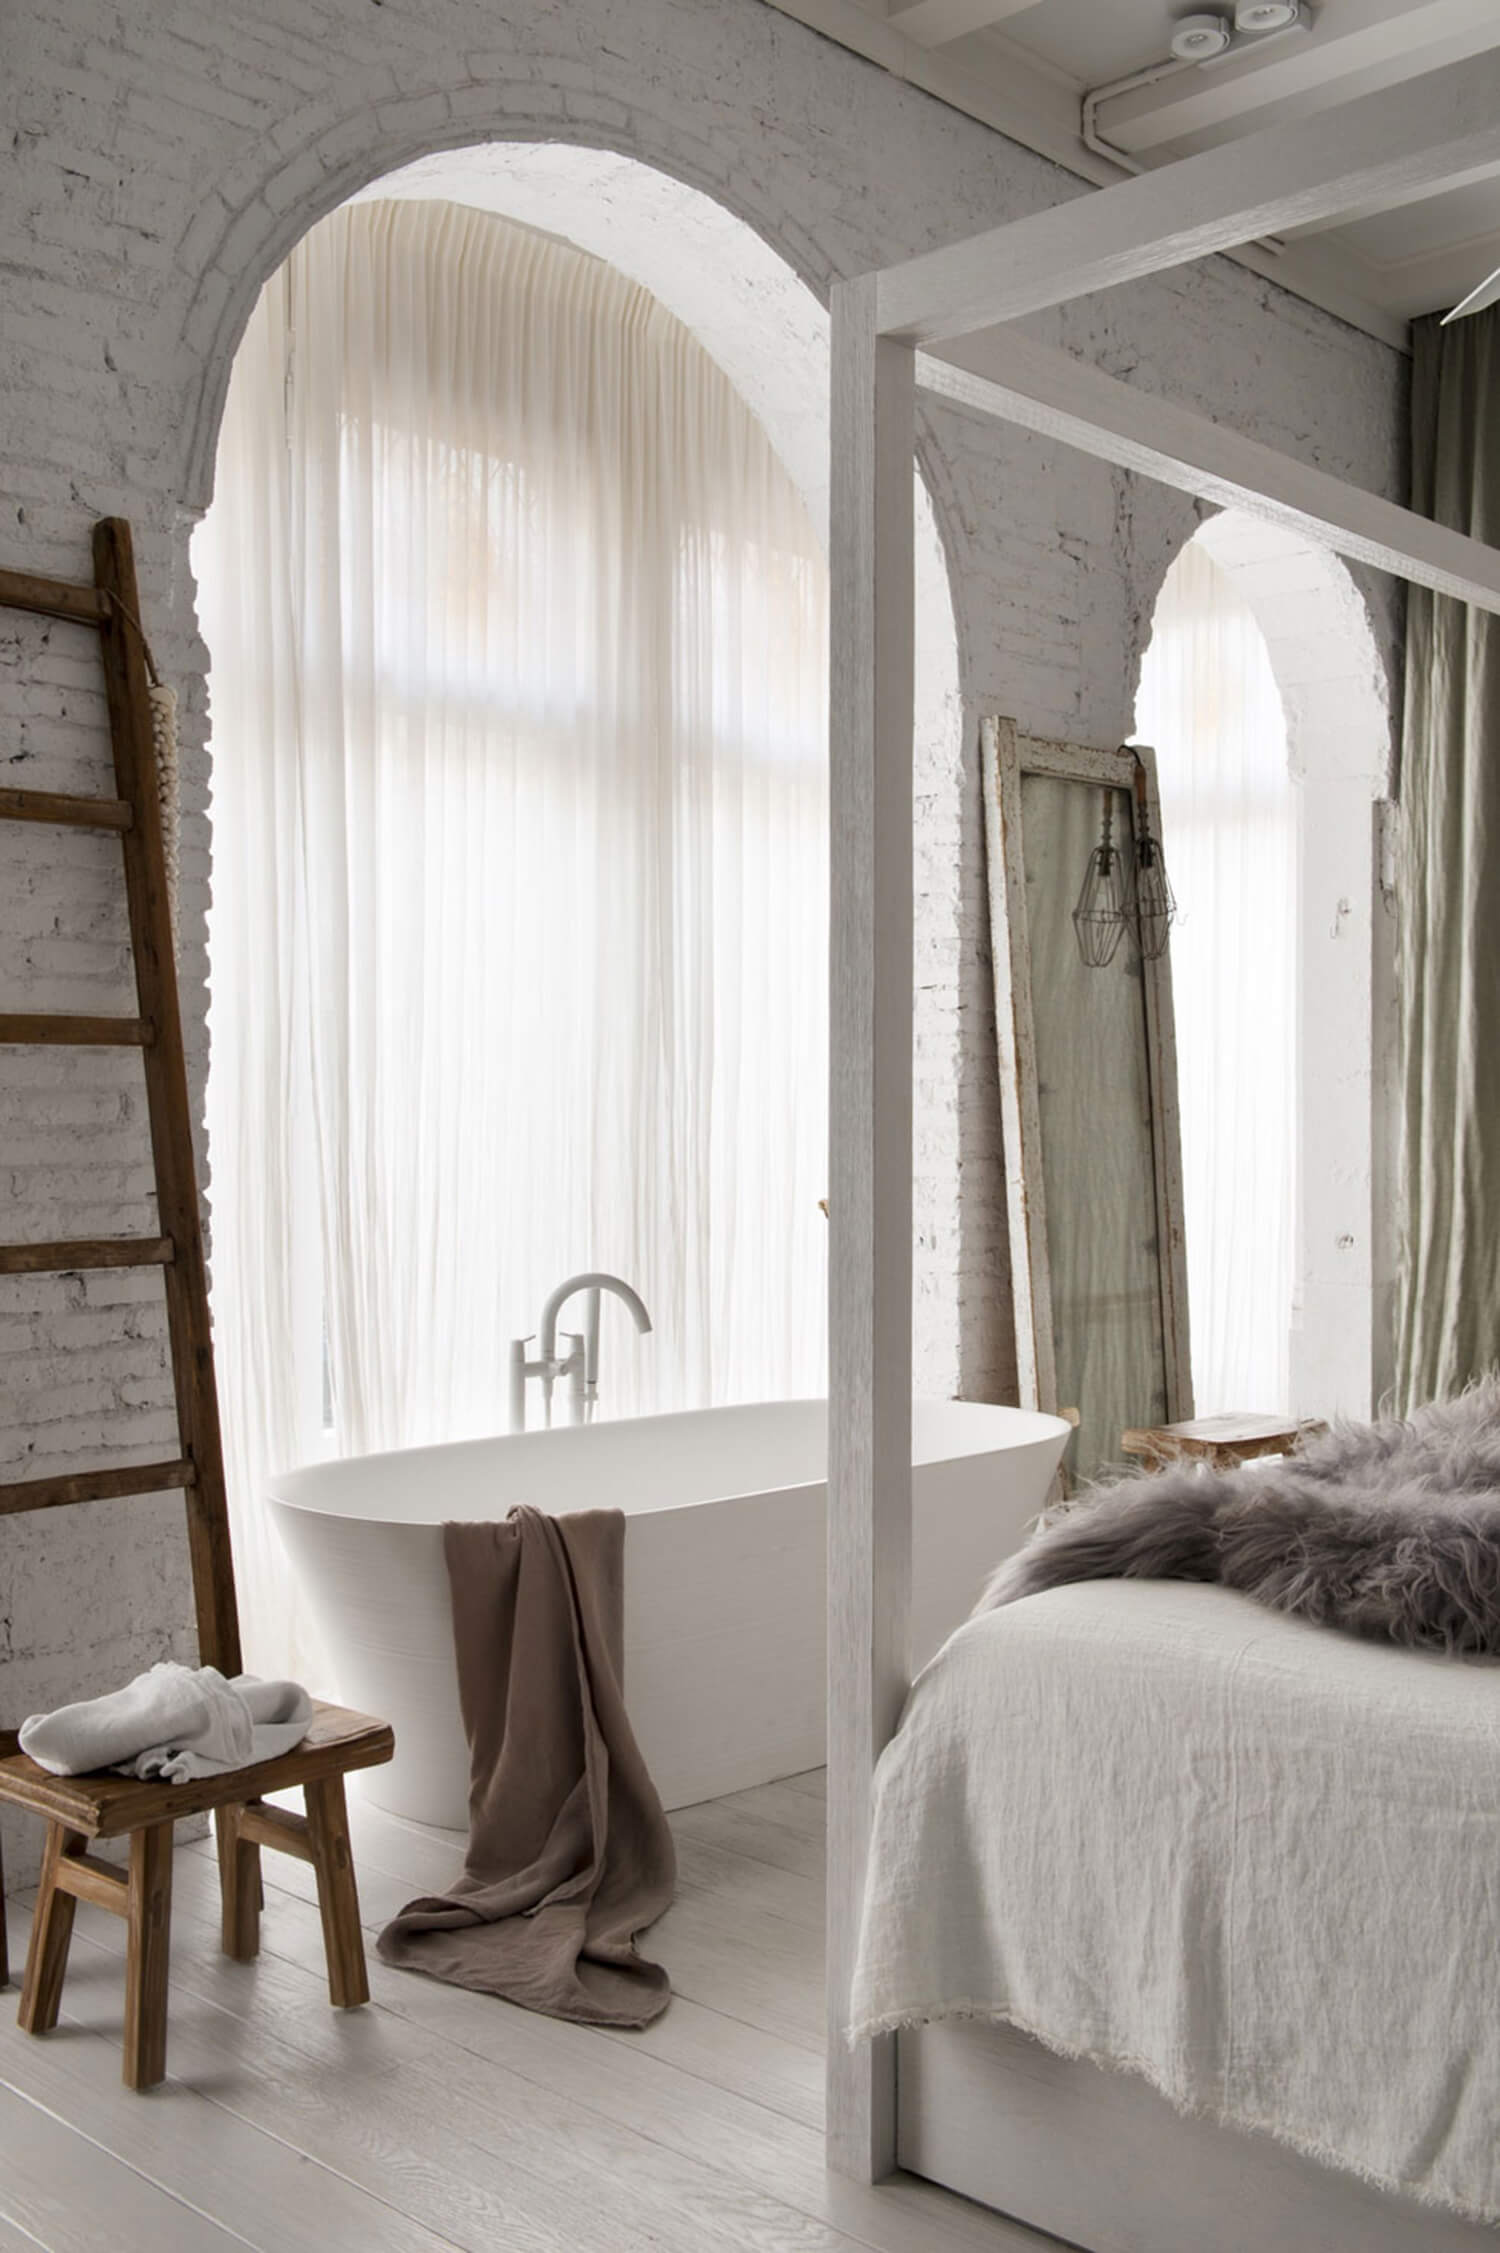 est-living-barcelona-loft-serrat-tort-architects-bedroom-bath